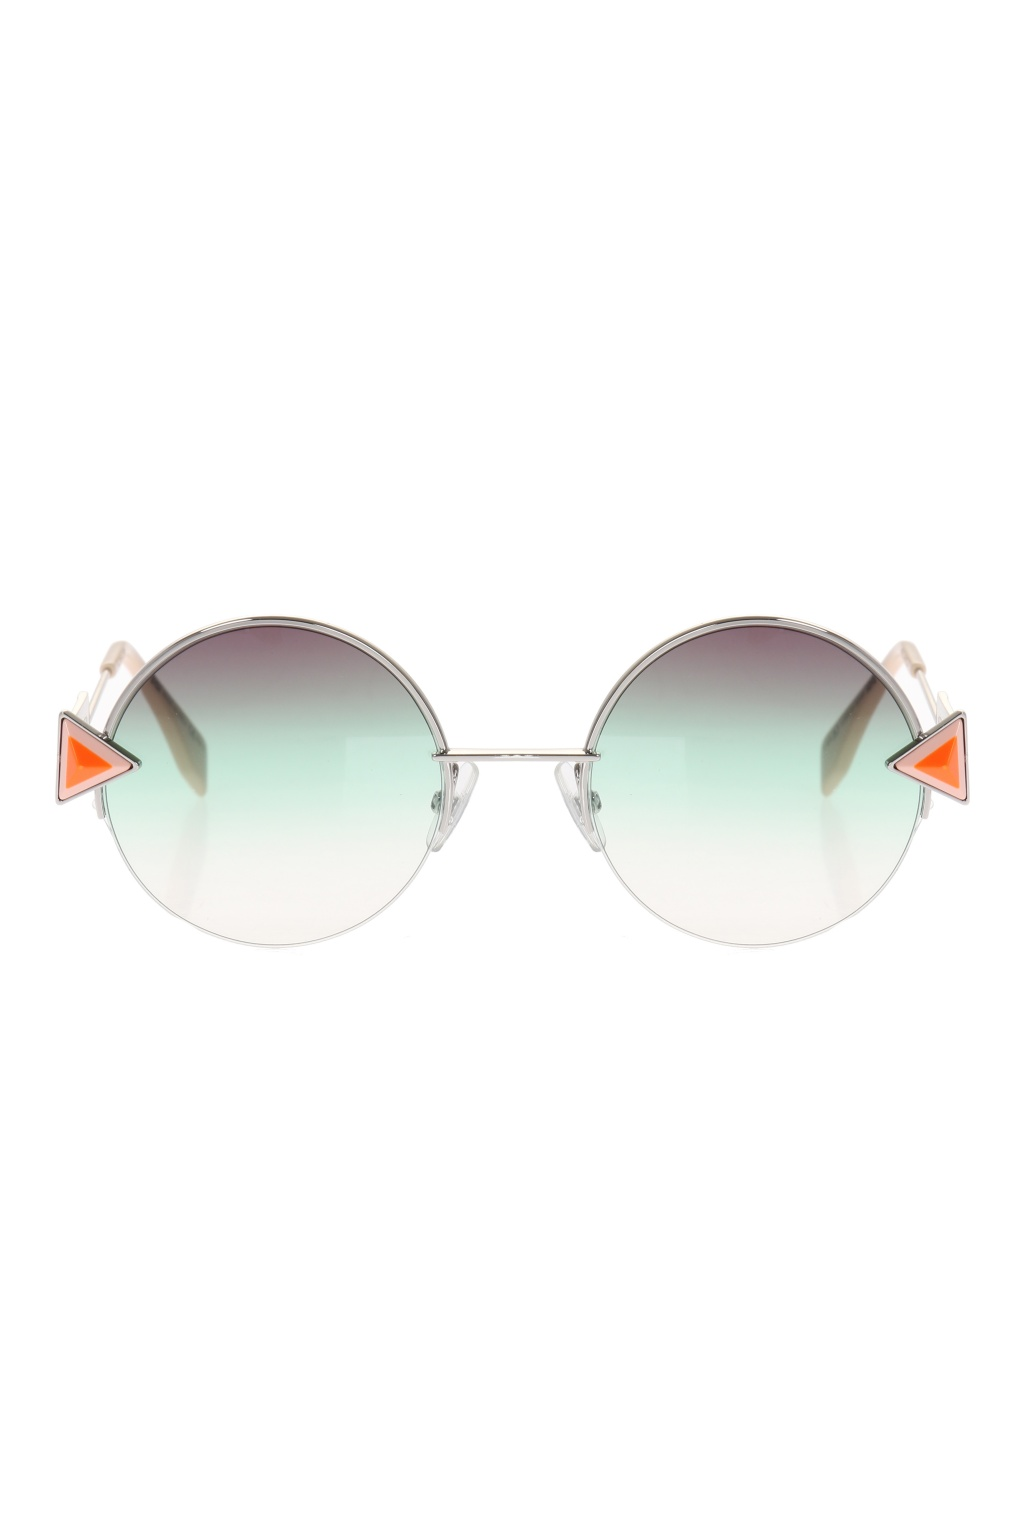 Fendi 'Rainbow' sunglasses